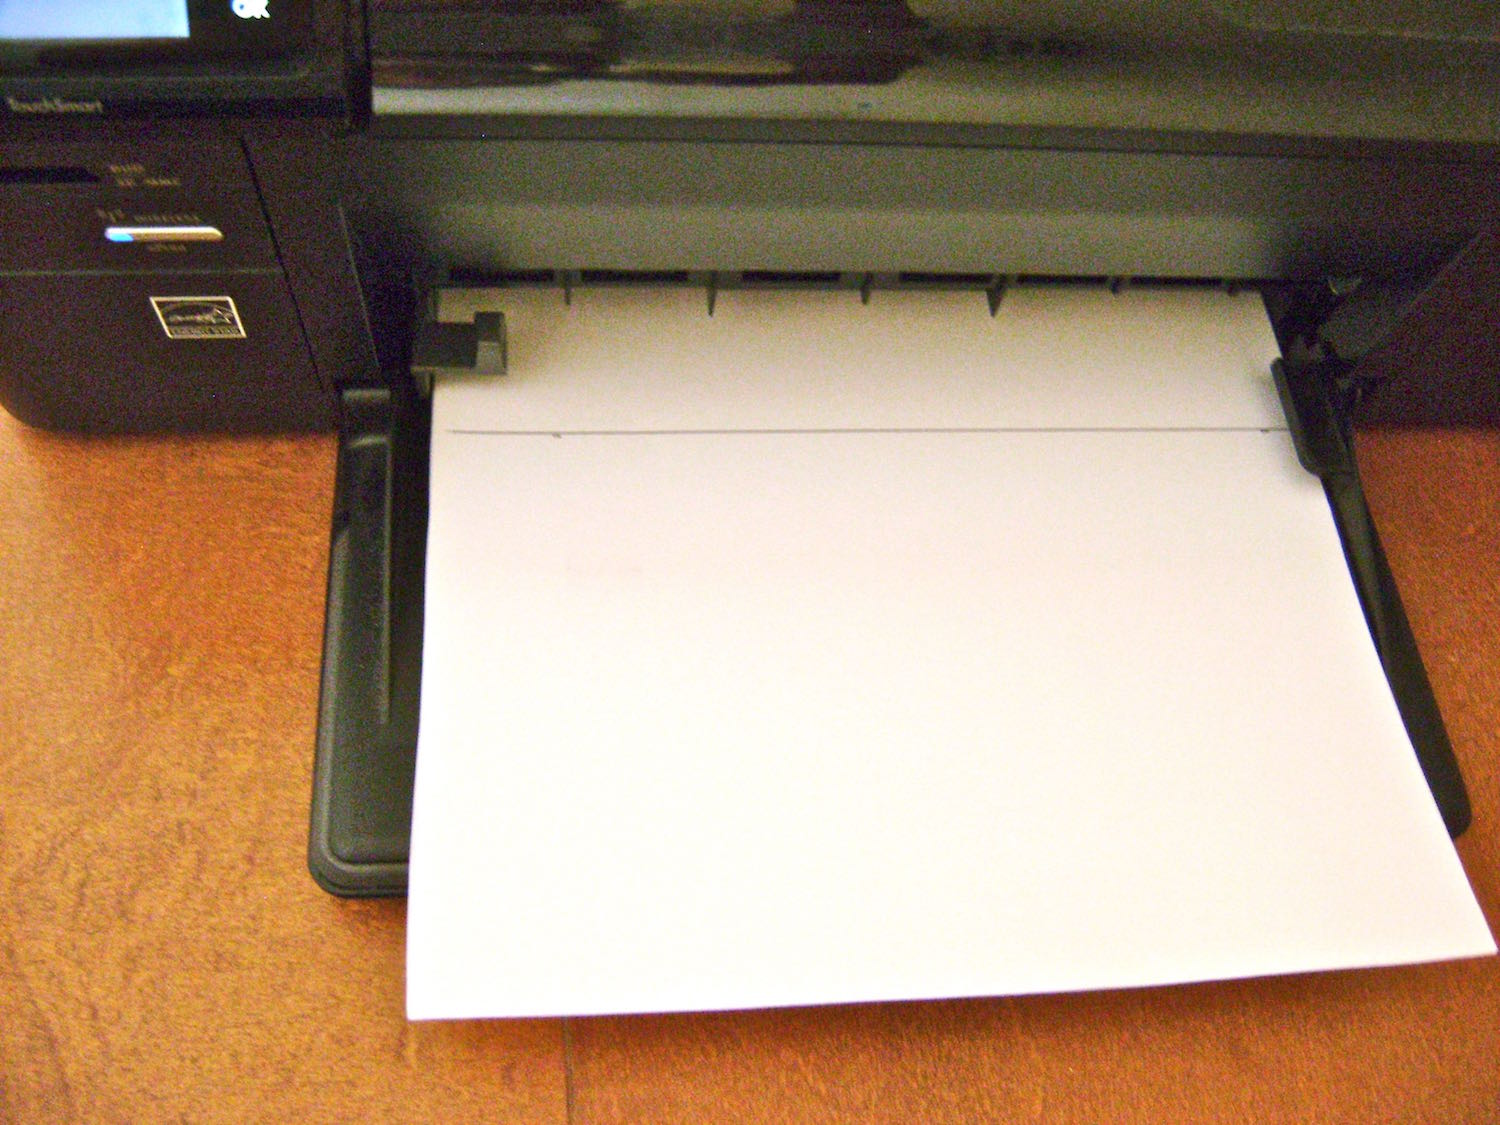 step 8 - Feed the page into the inkjet printer so that it prints on the shiny side.